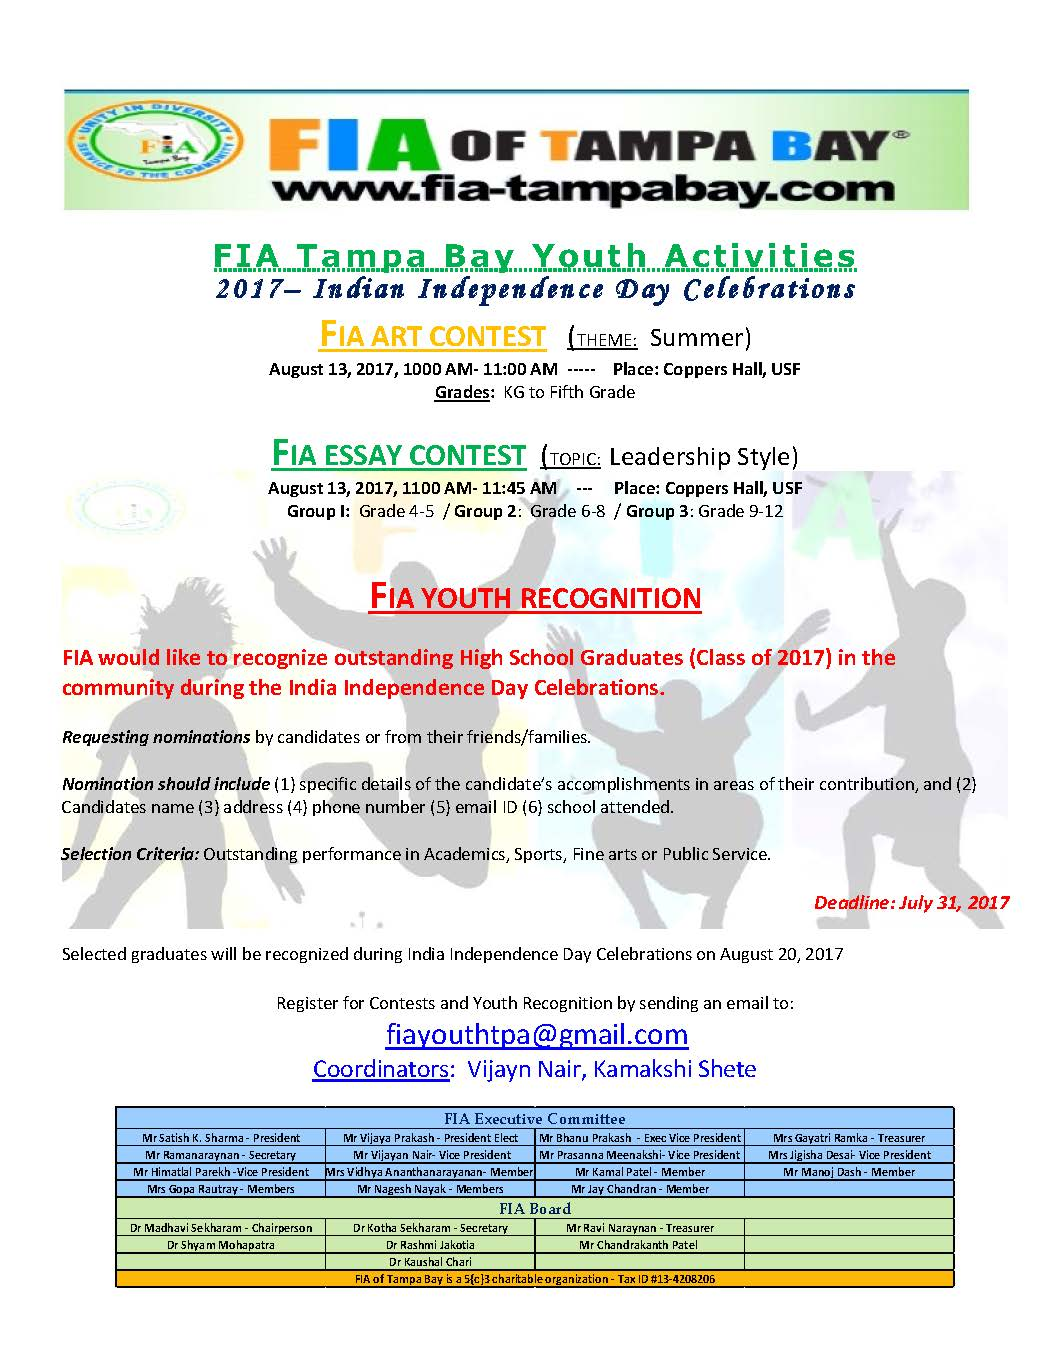 FIA of Tampa Bay - Upcoming Events